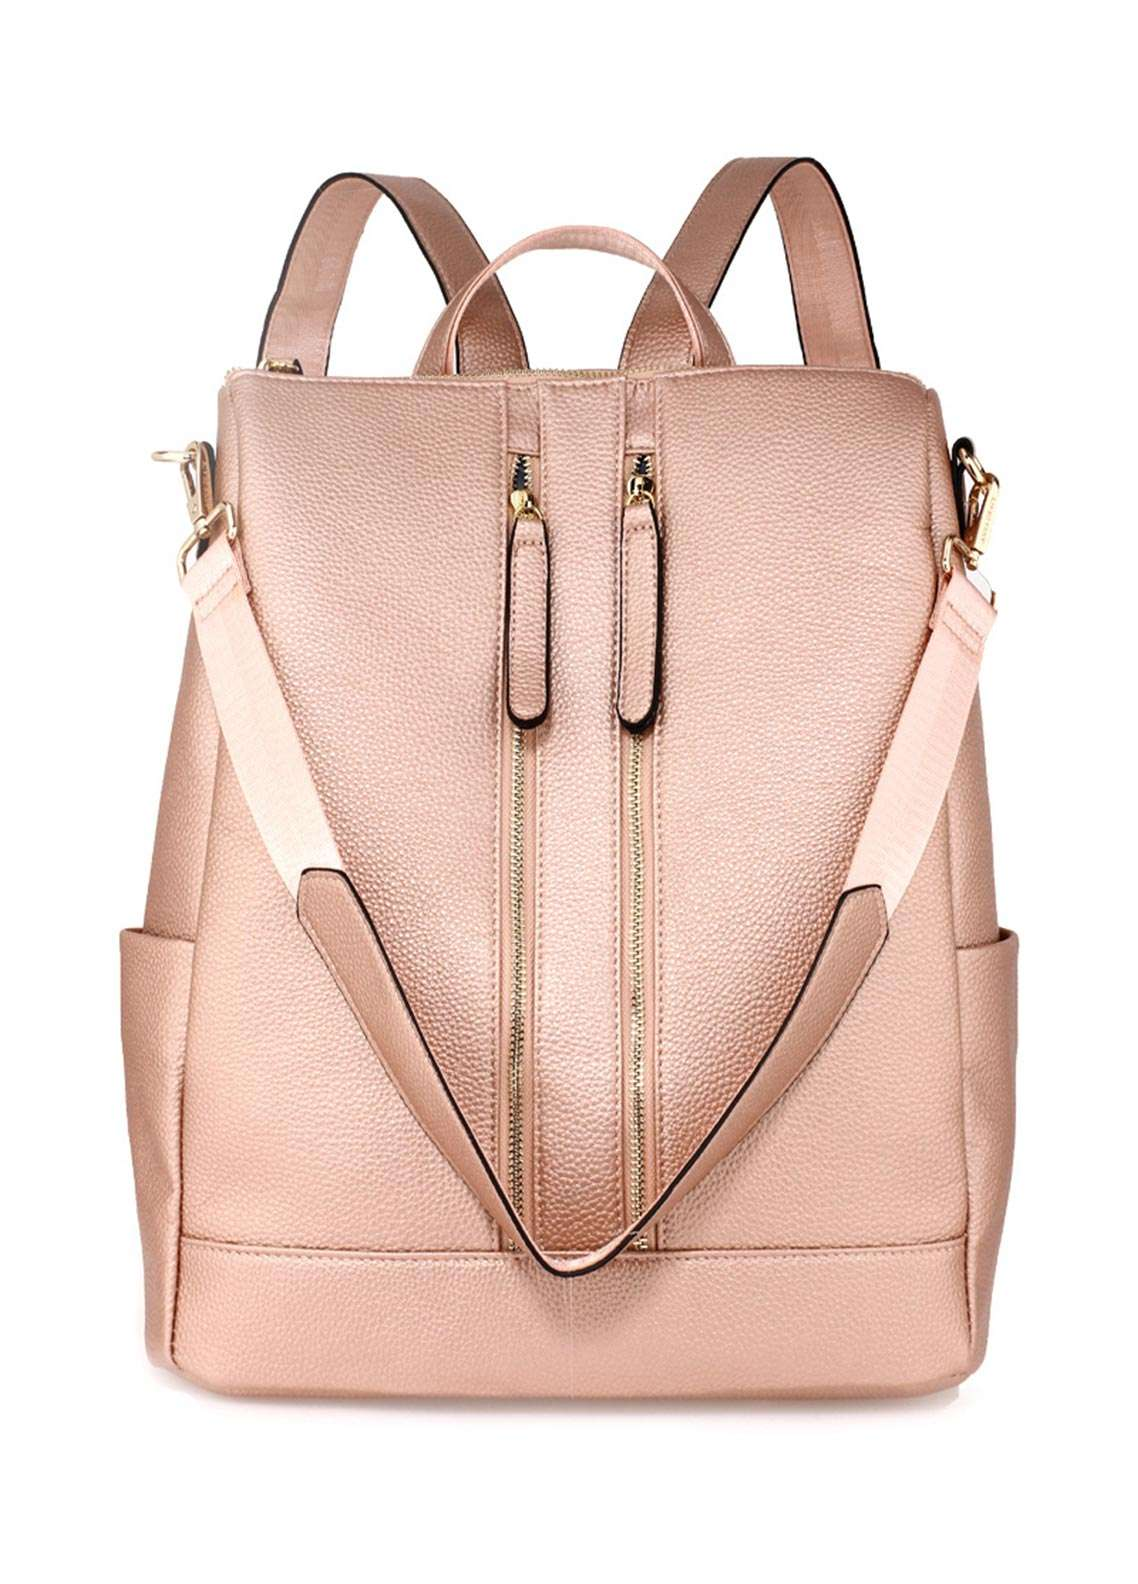 Anna Grace London Smooth Backpack Bags  for Women  Champagne with Grainy Texture